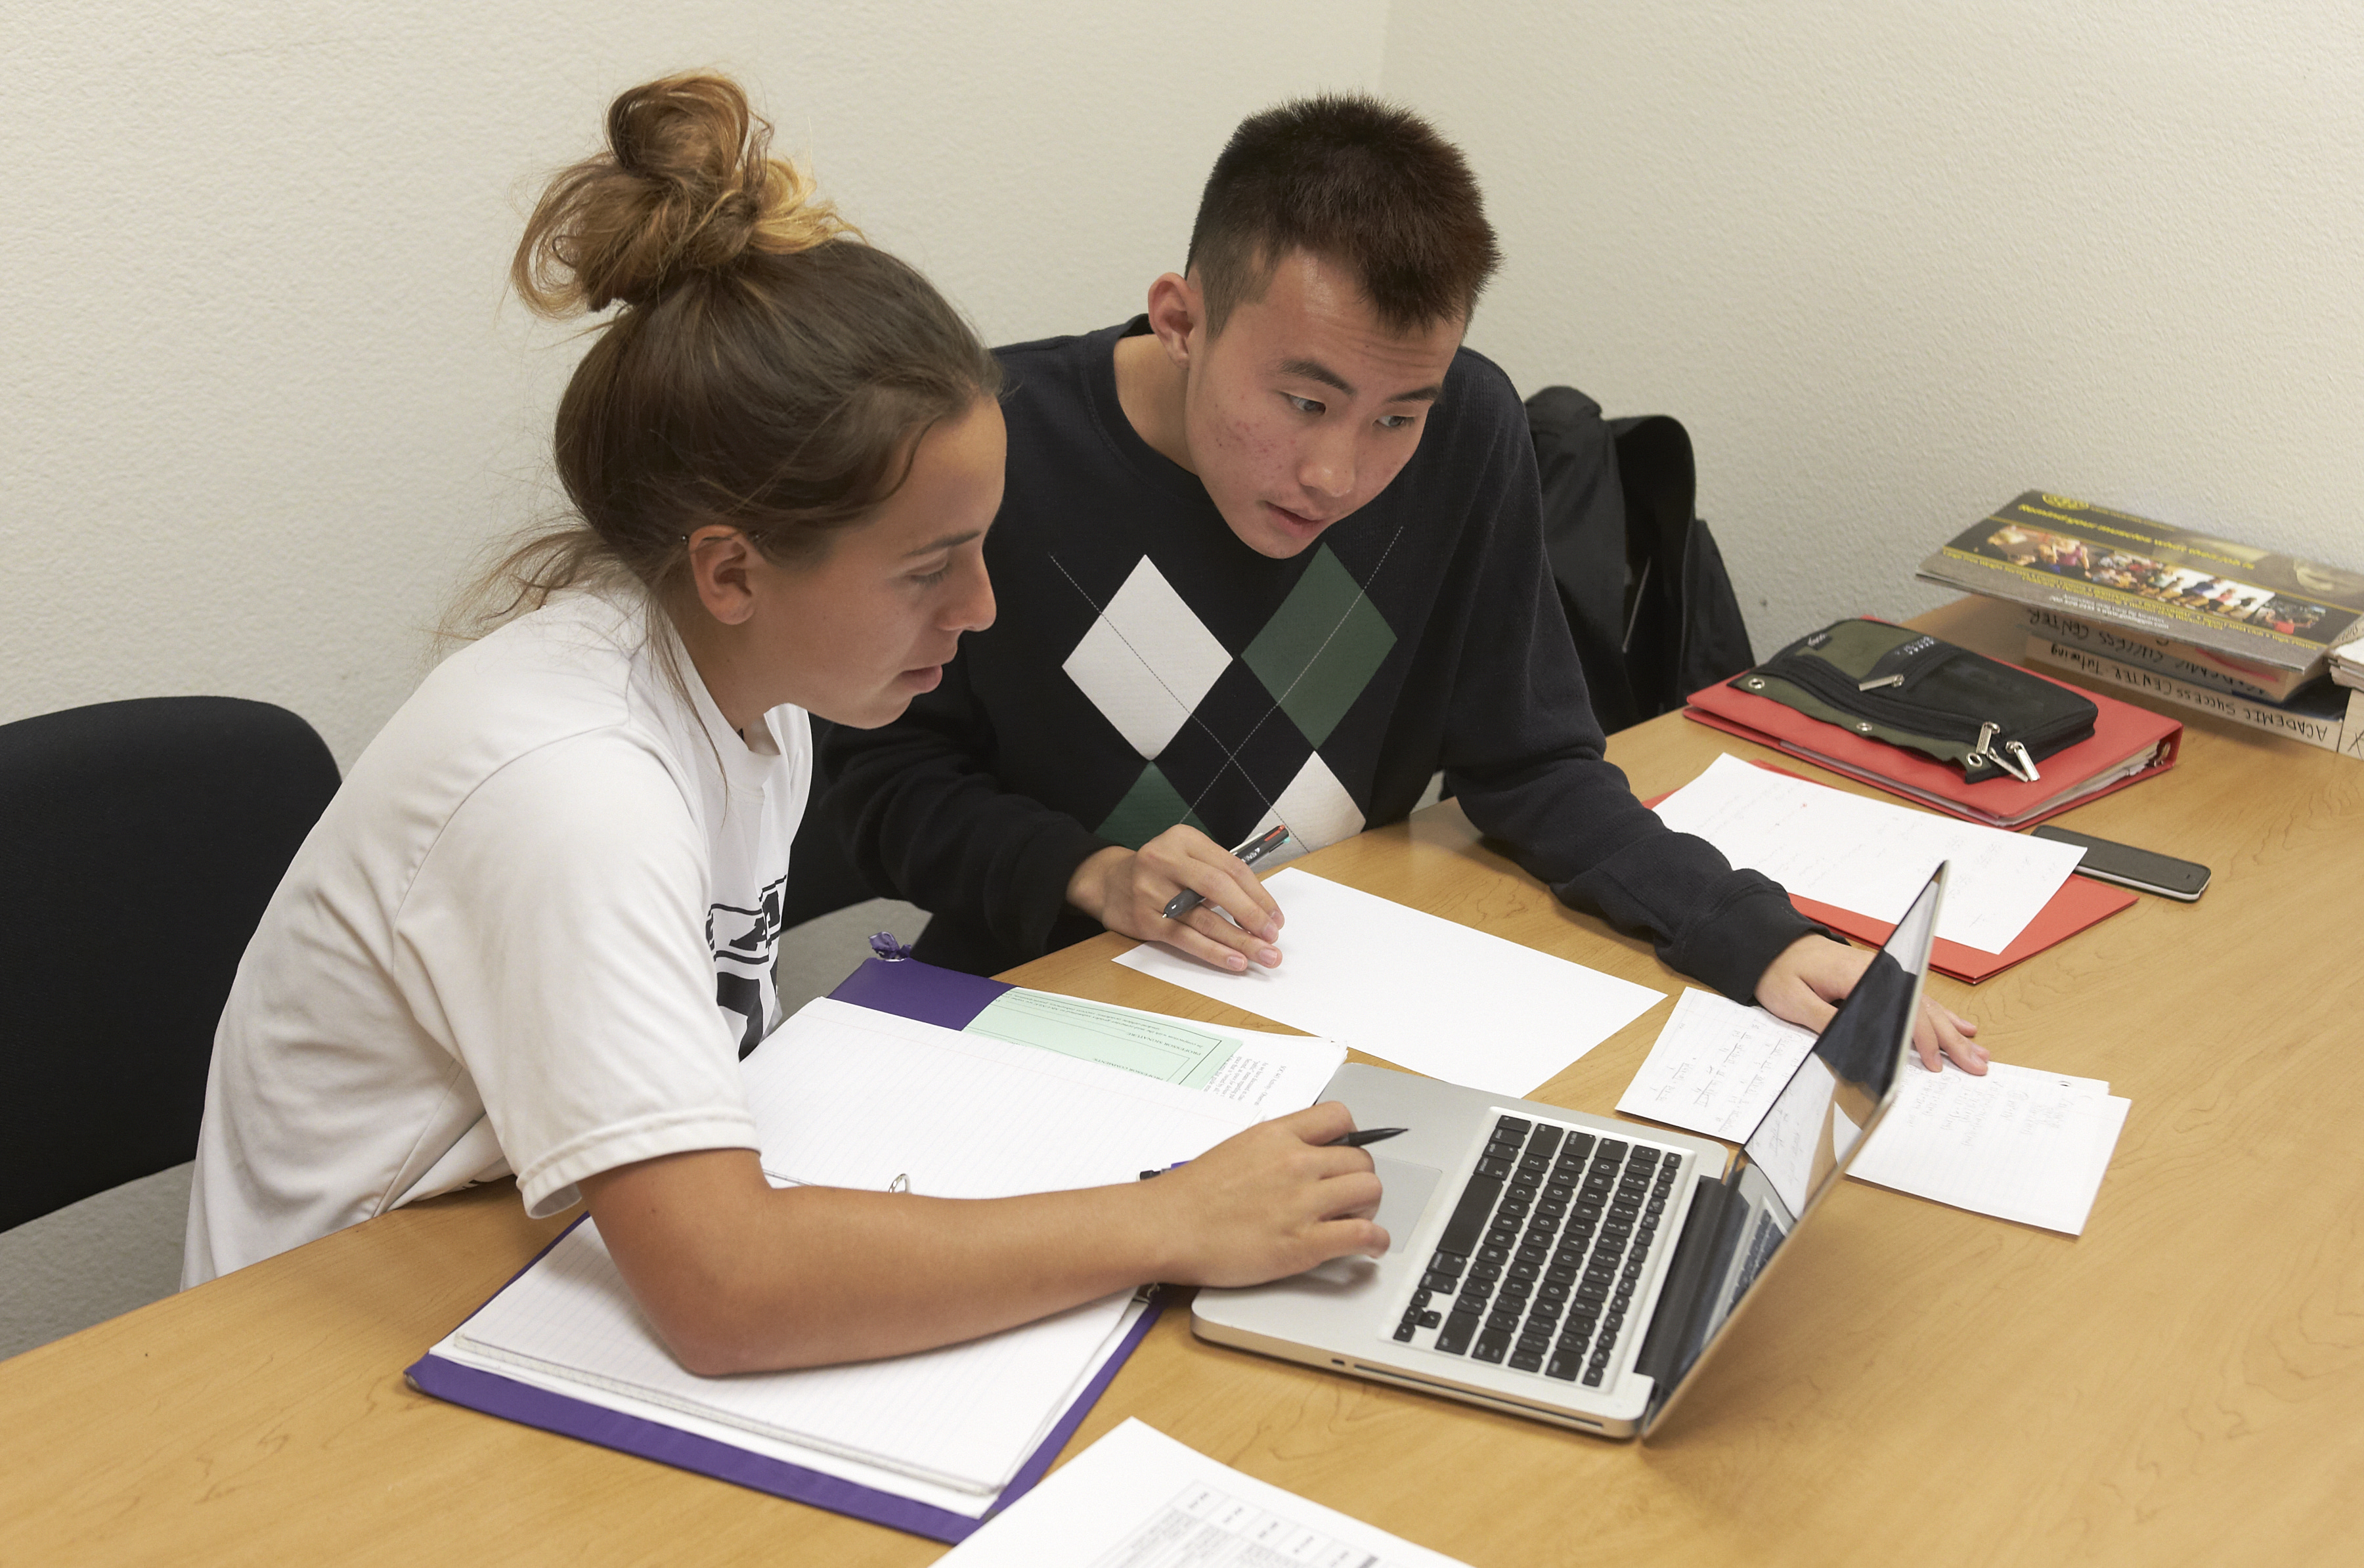 Two people studying with laptop